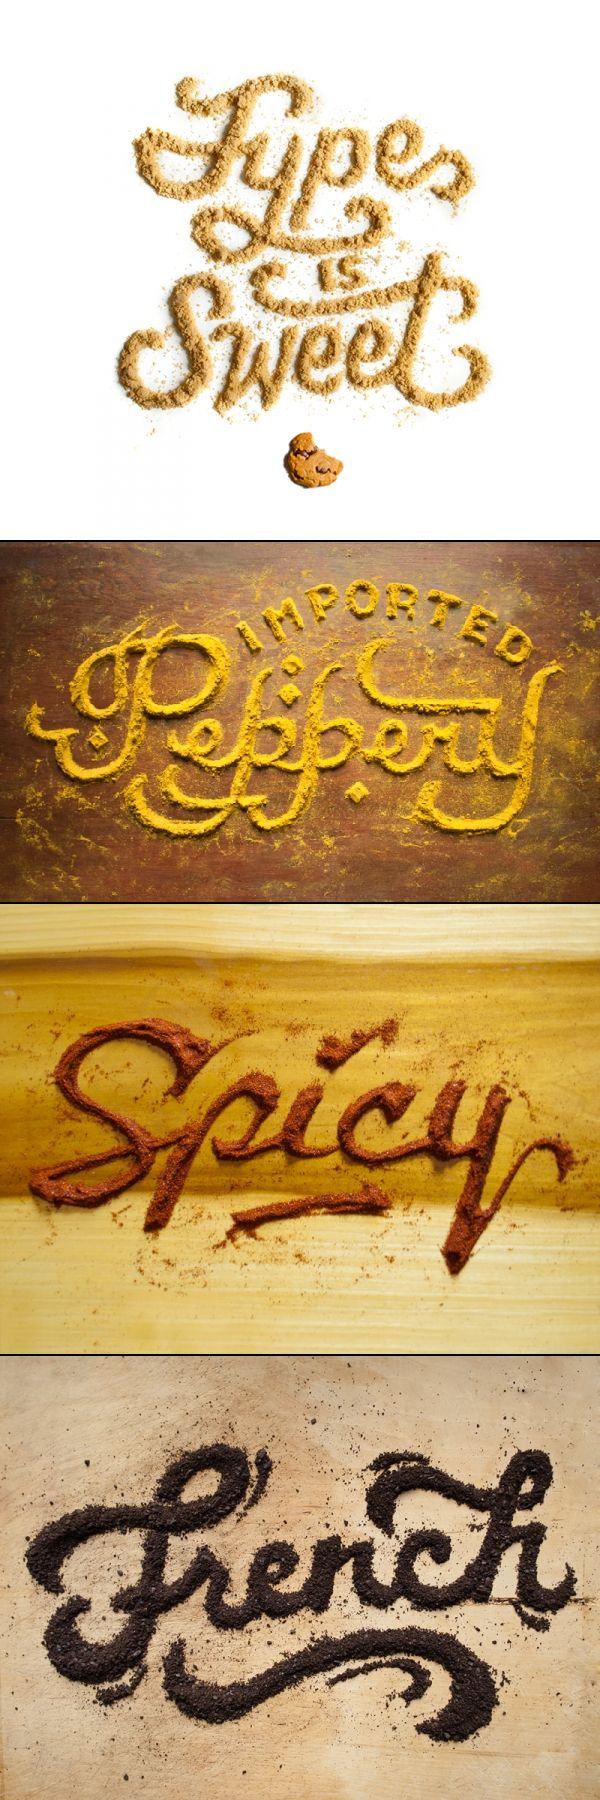 http://foodtypography.com/ Food #Typography